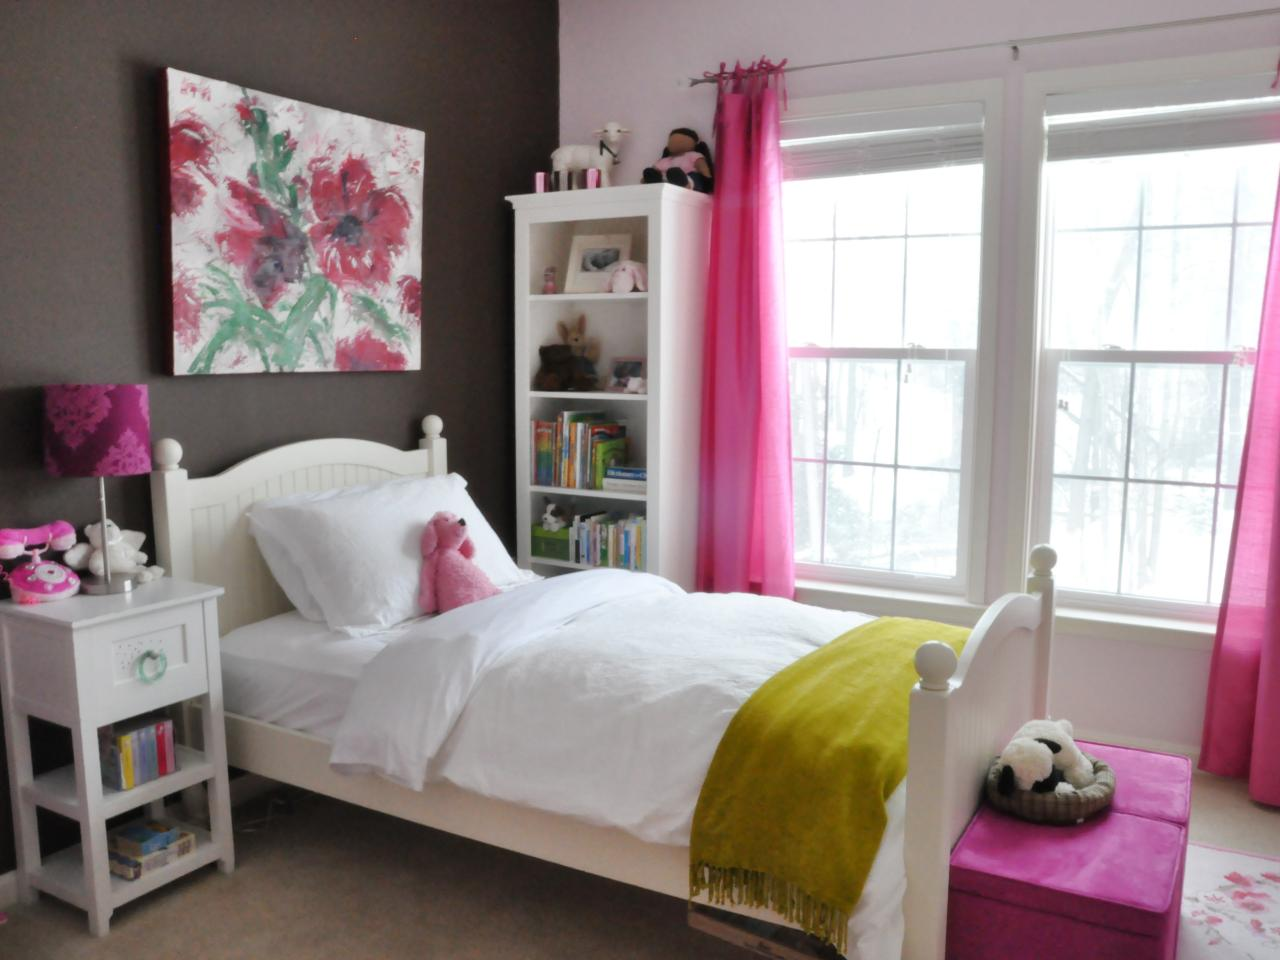 decoration for girl bedroom photo - 1